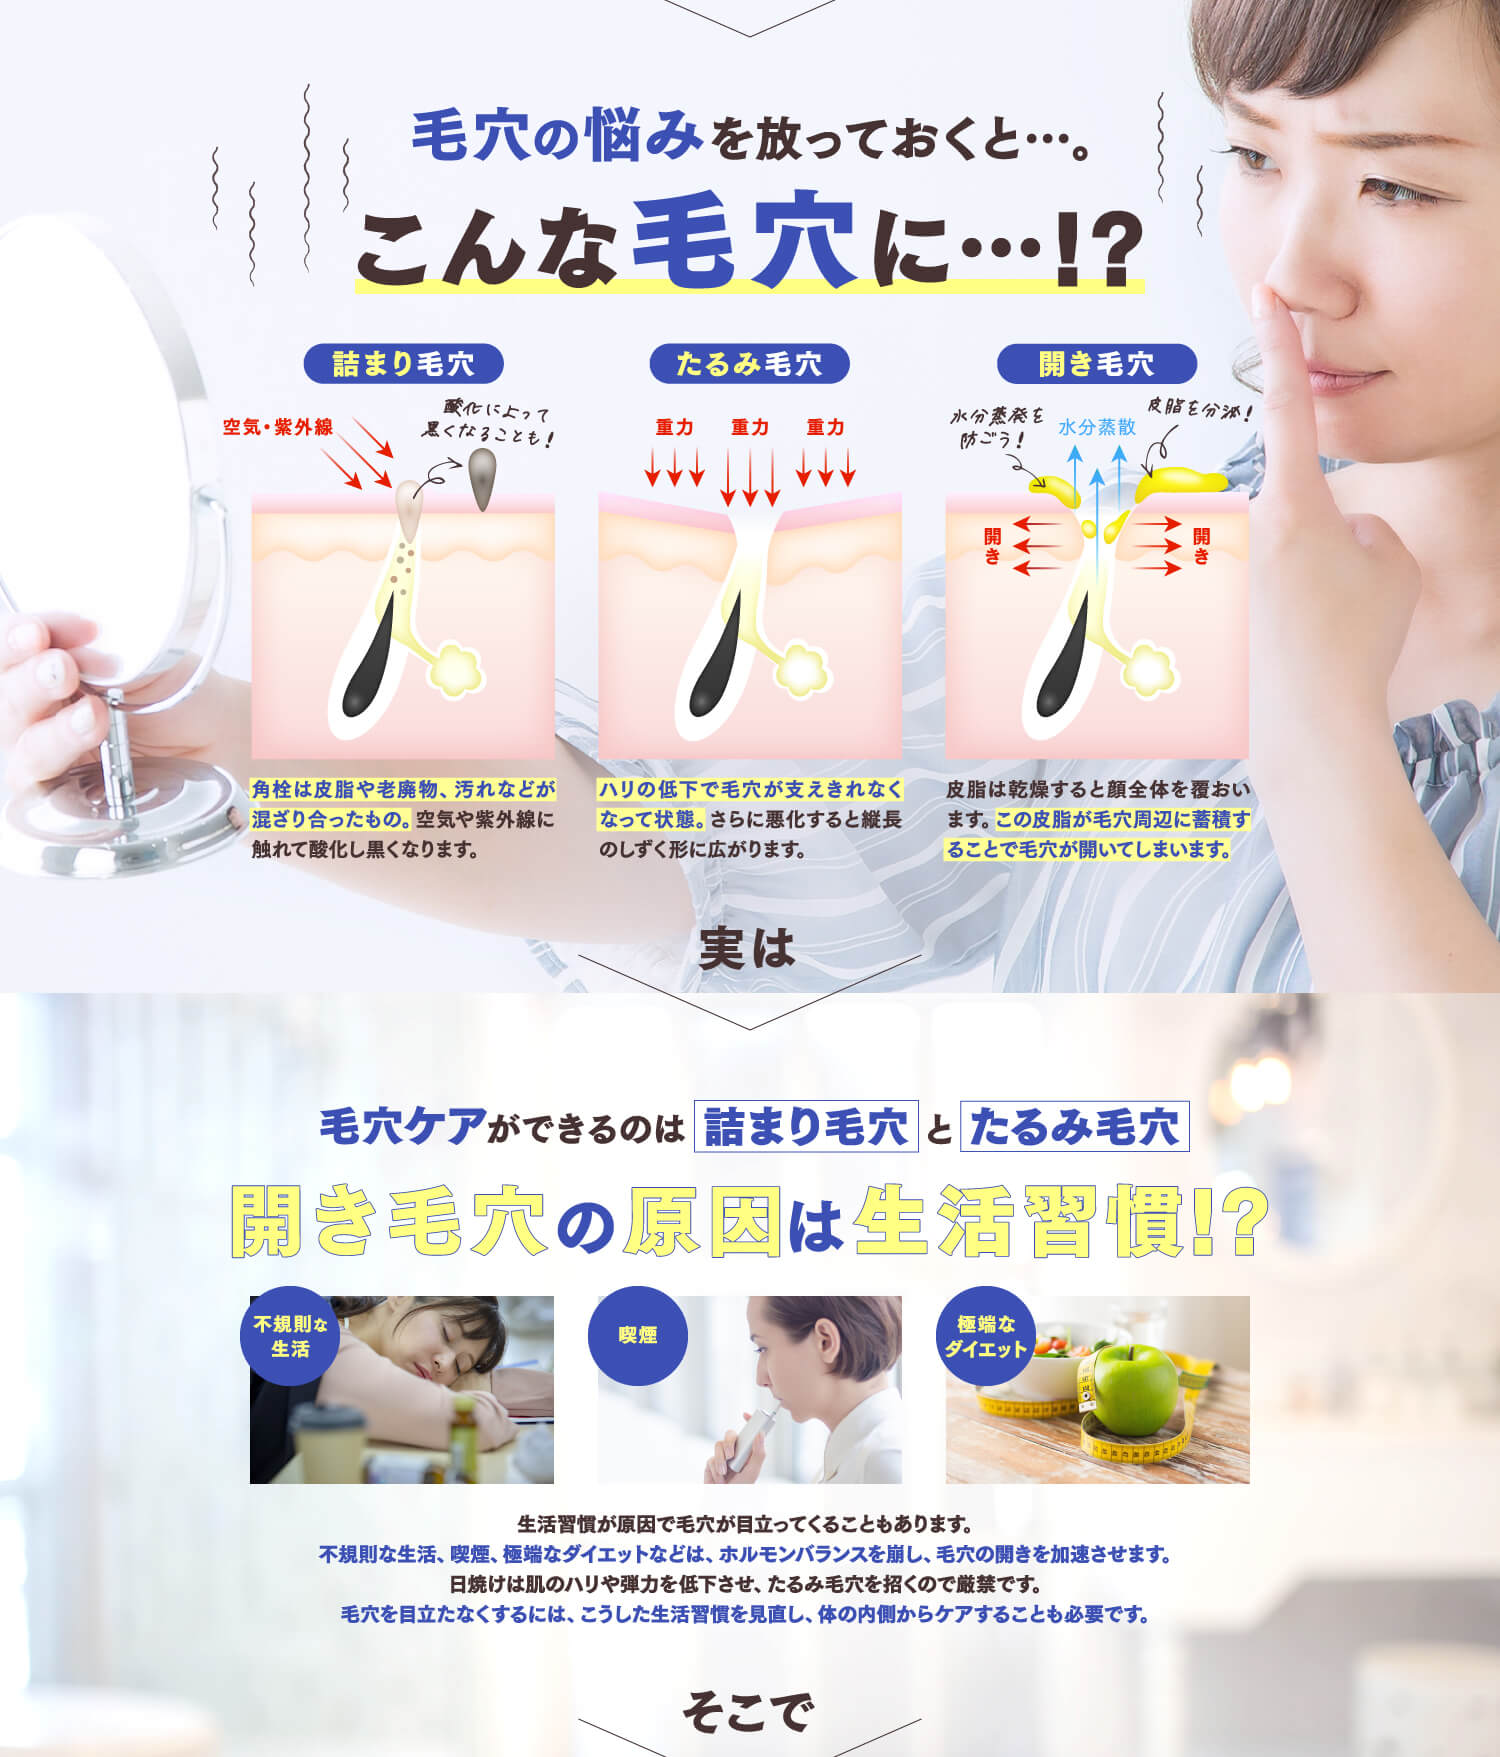 CRYSTUAL CLEAR SOAP・CRYSTUAL SUPPLEMENT 毛穴の悩みを放っておくと…。こんな毛穴に…!?